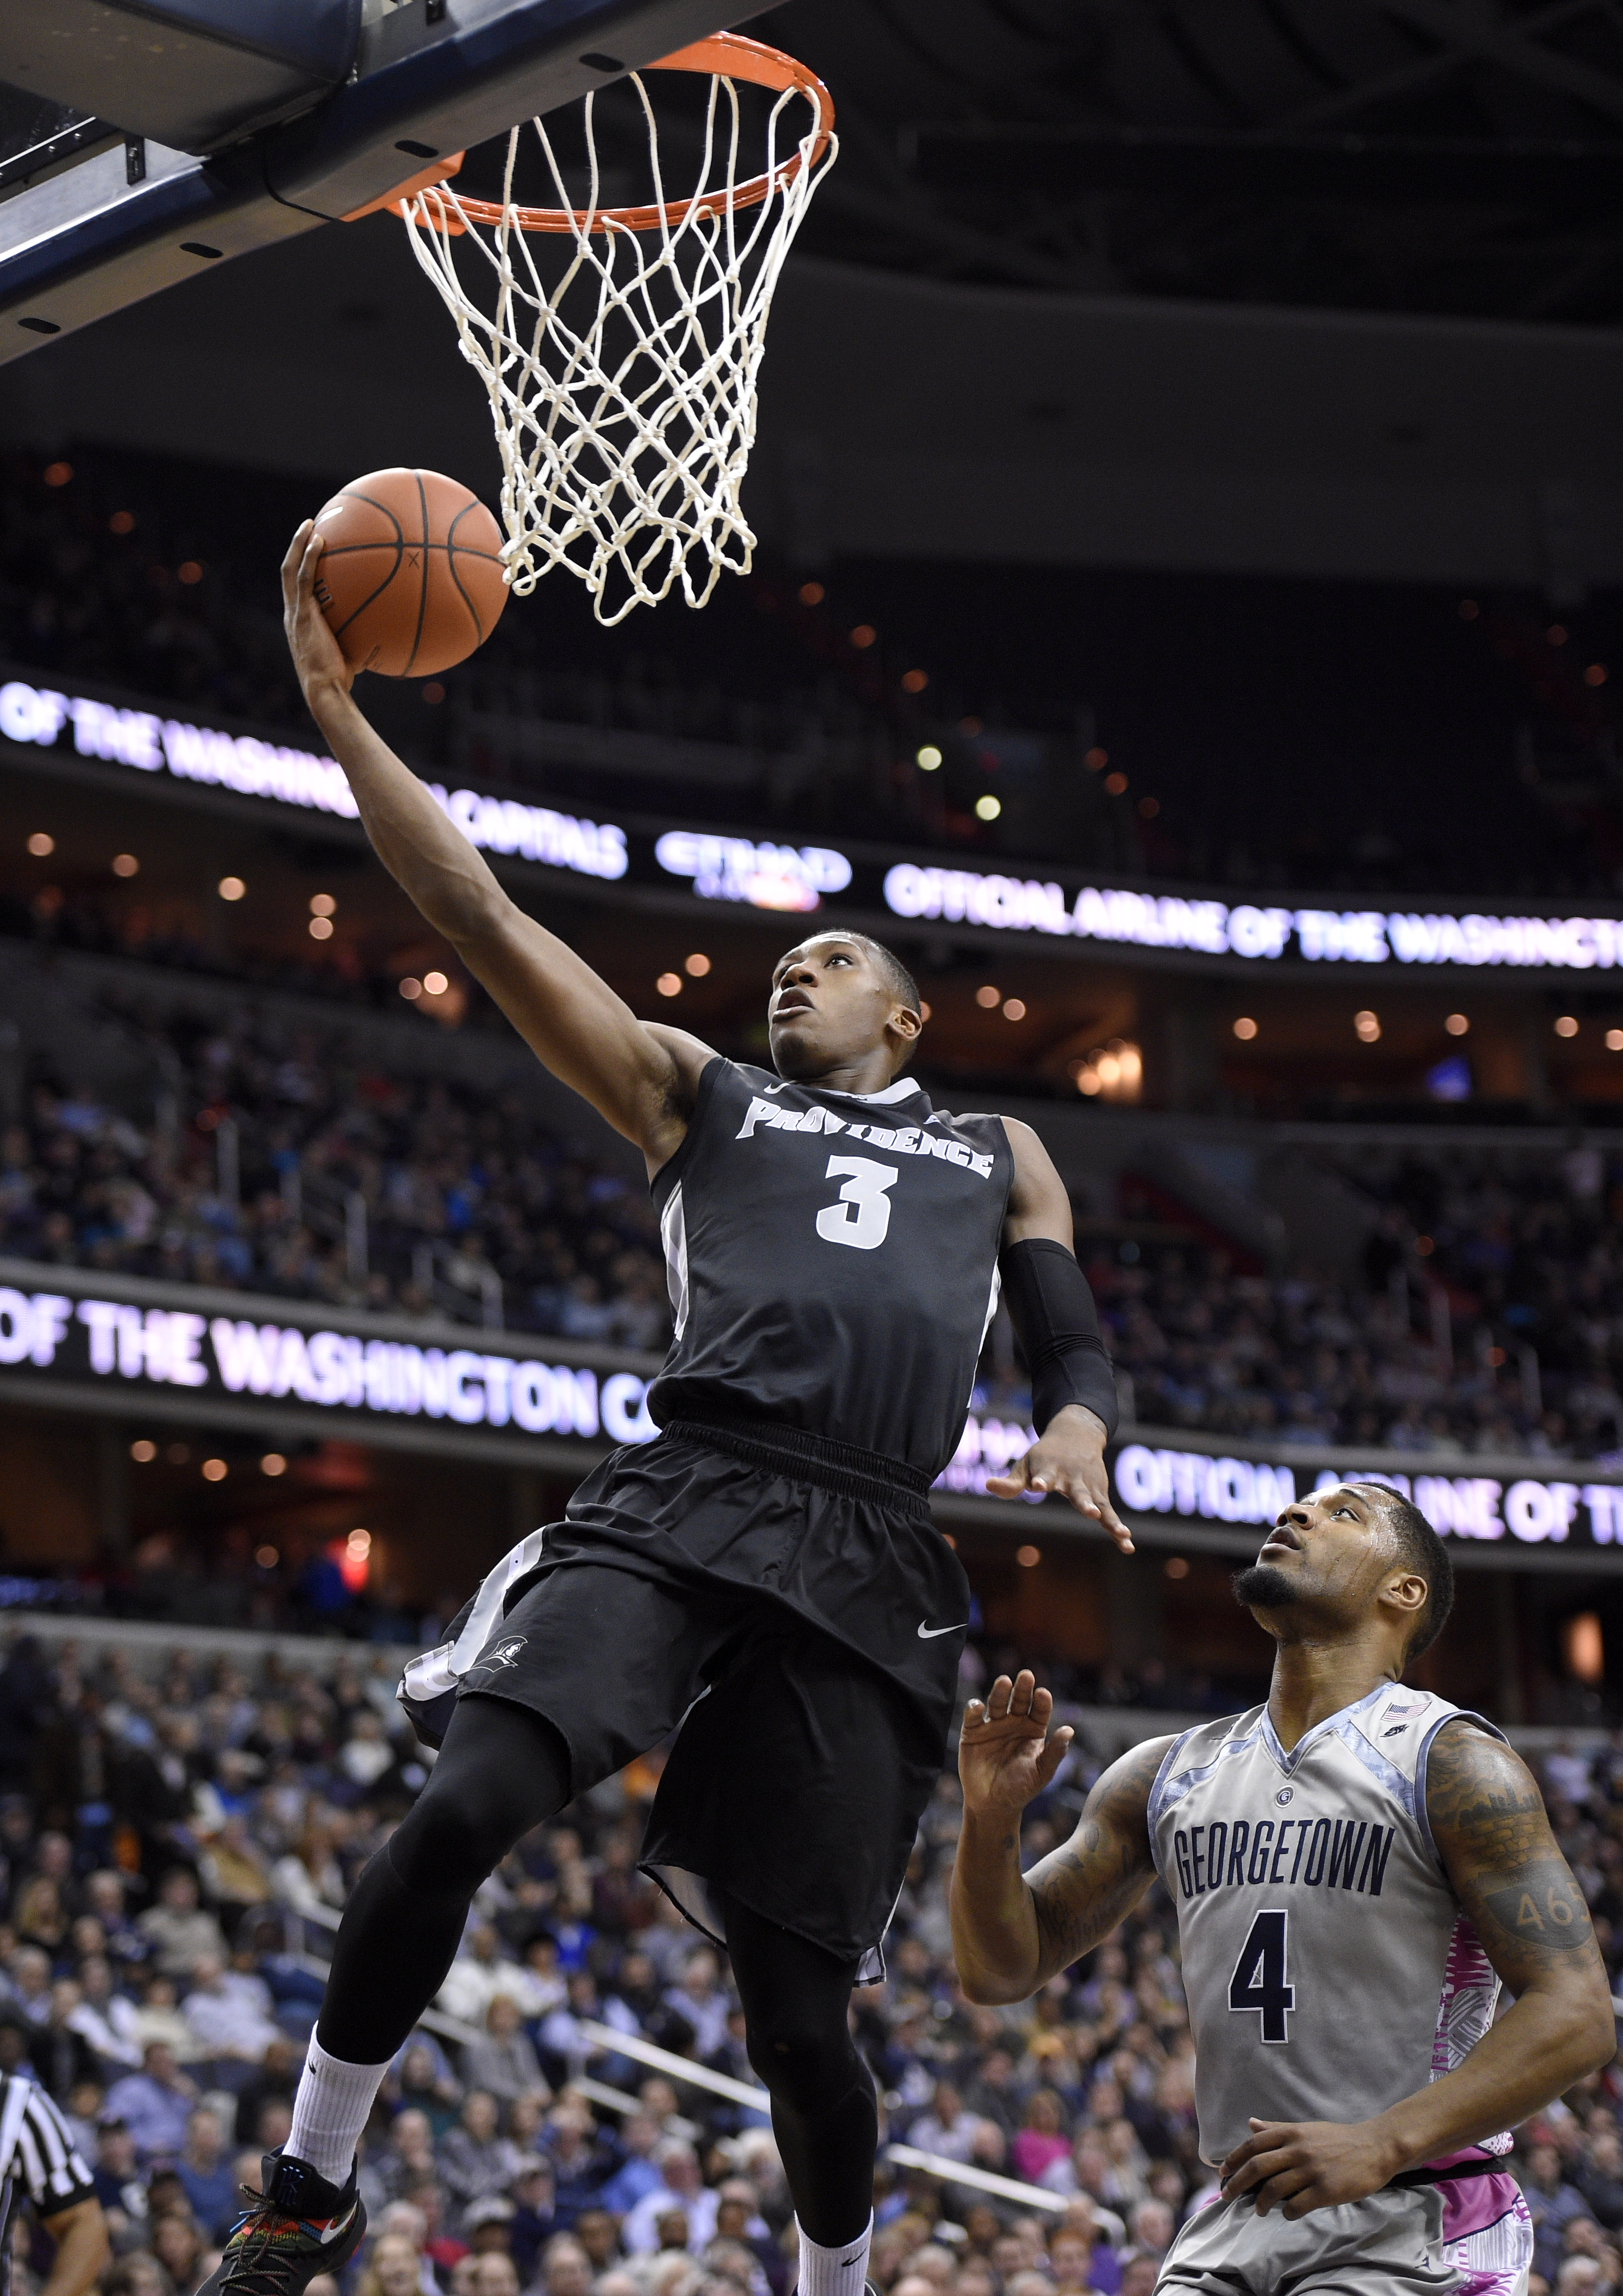 Providence guard Kris Dunn (3) goes to the basket past Georgetown guard D'Vauntes Smith-Rivera (4) during the first half of an NCAA college basketball game, Saturday, Jan. 30, 2016, in Washington. (AP Photo/Nick Wass)